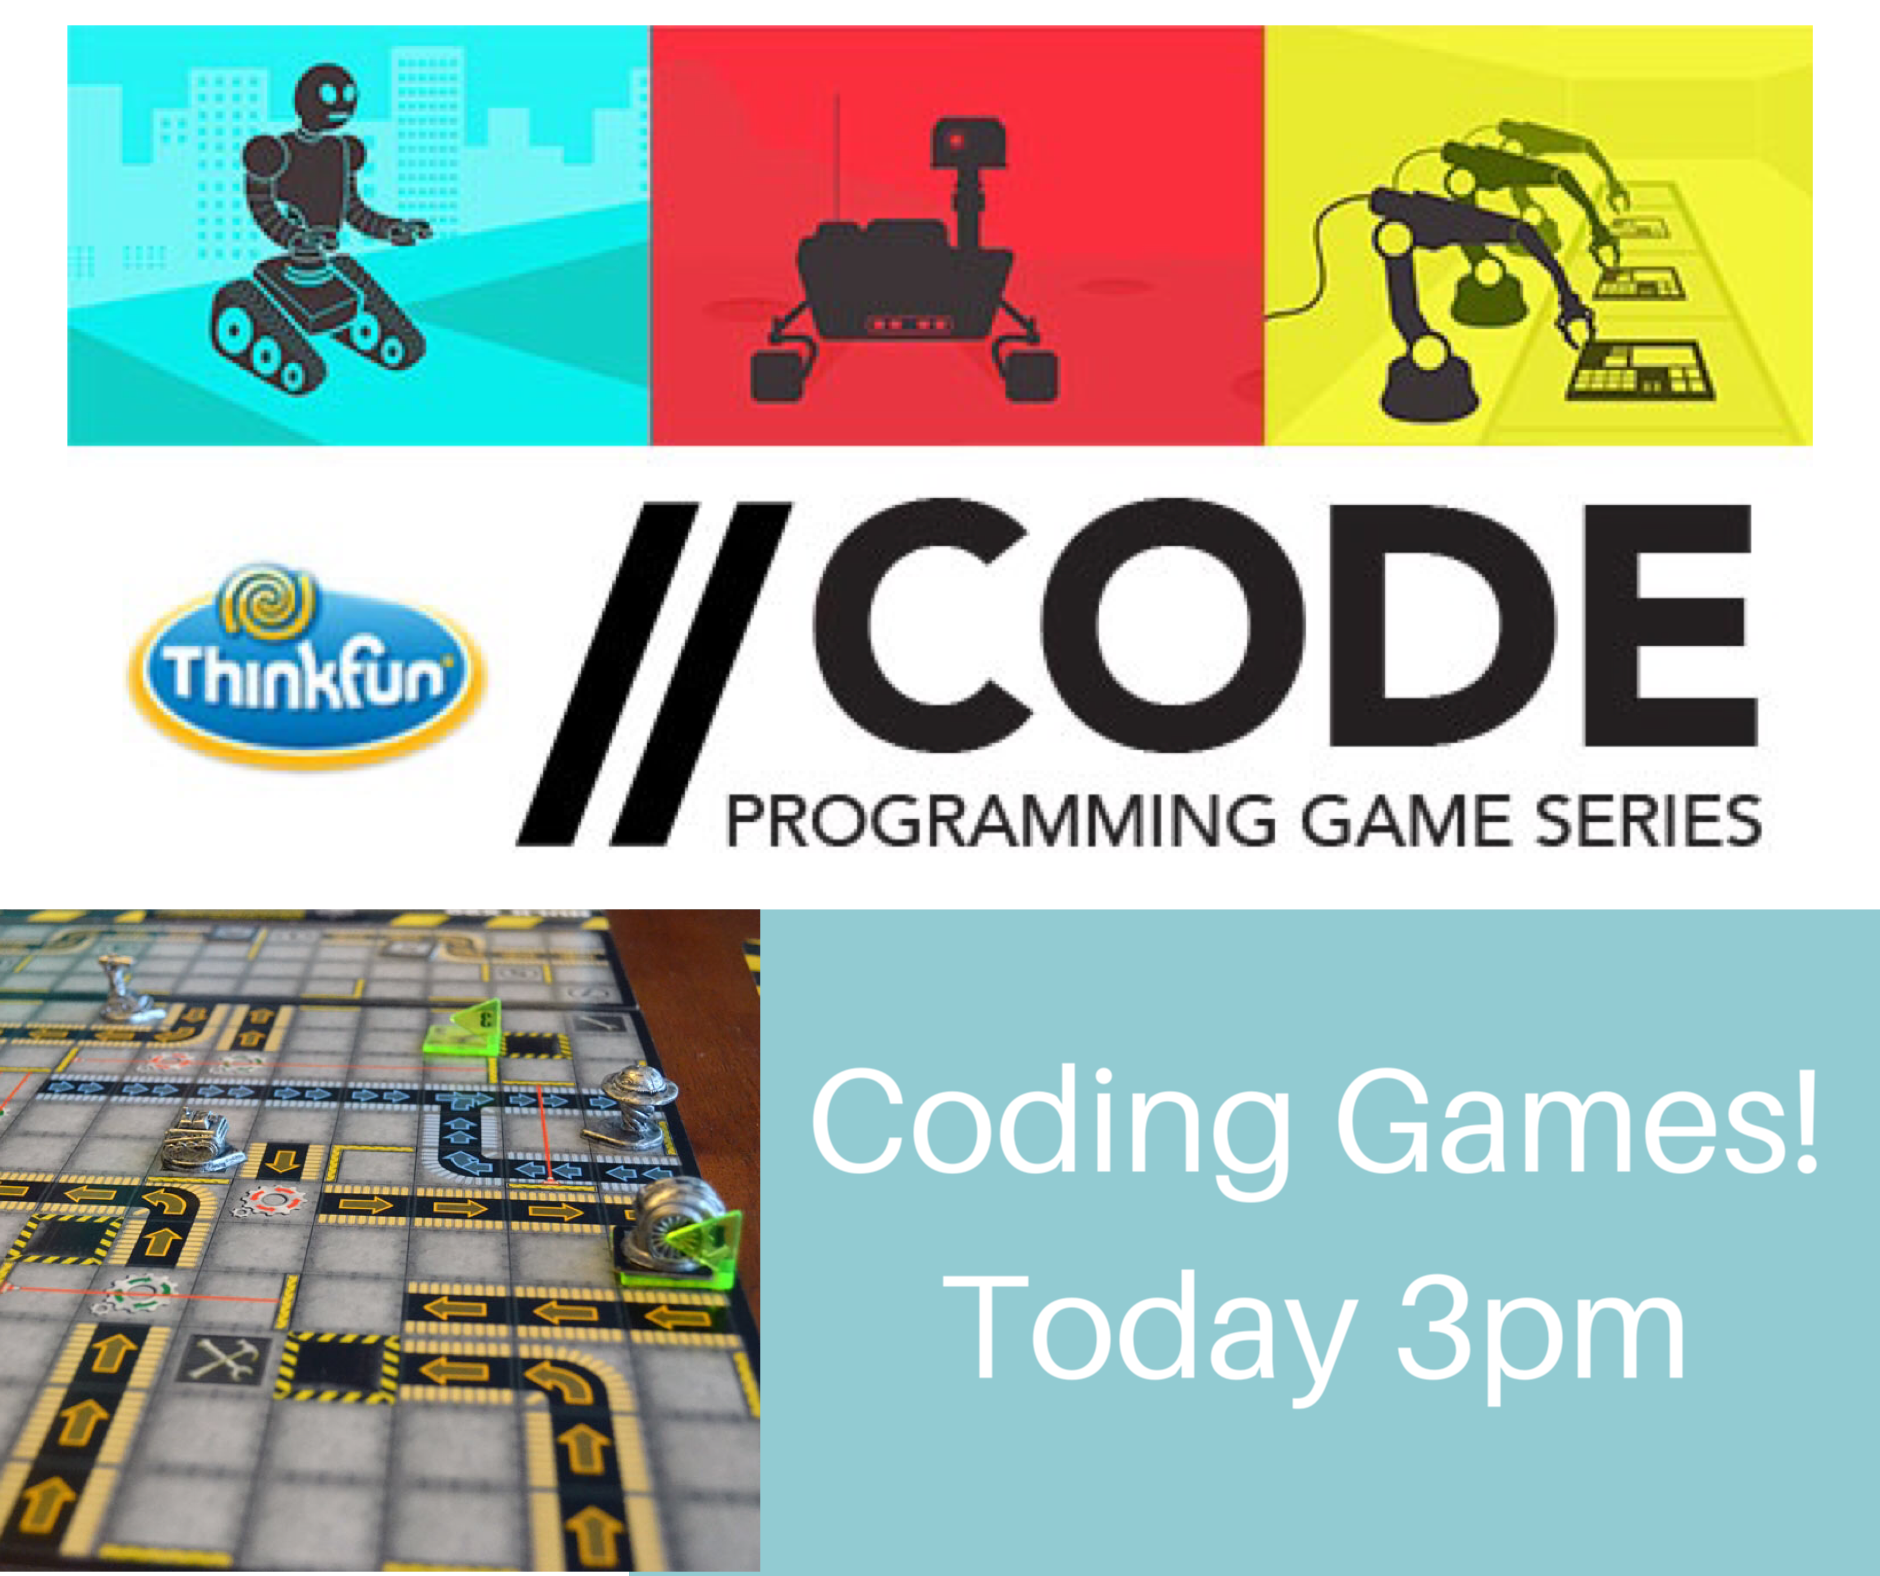 Coding games today at 3pm